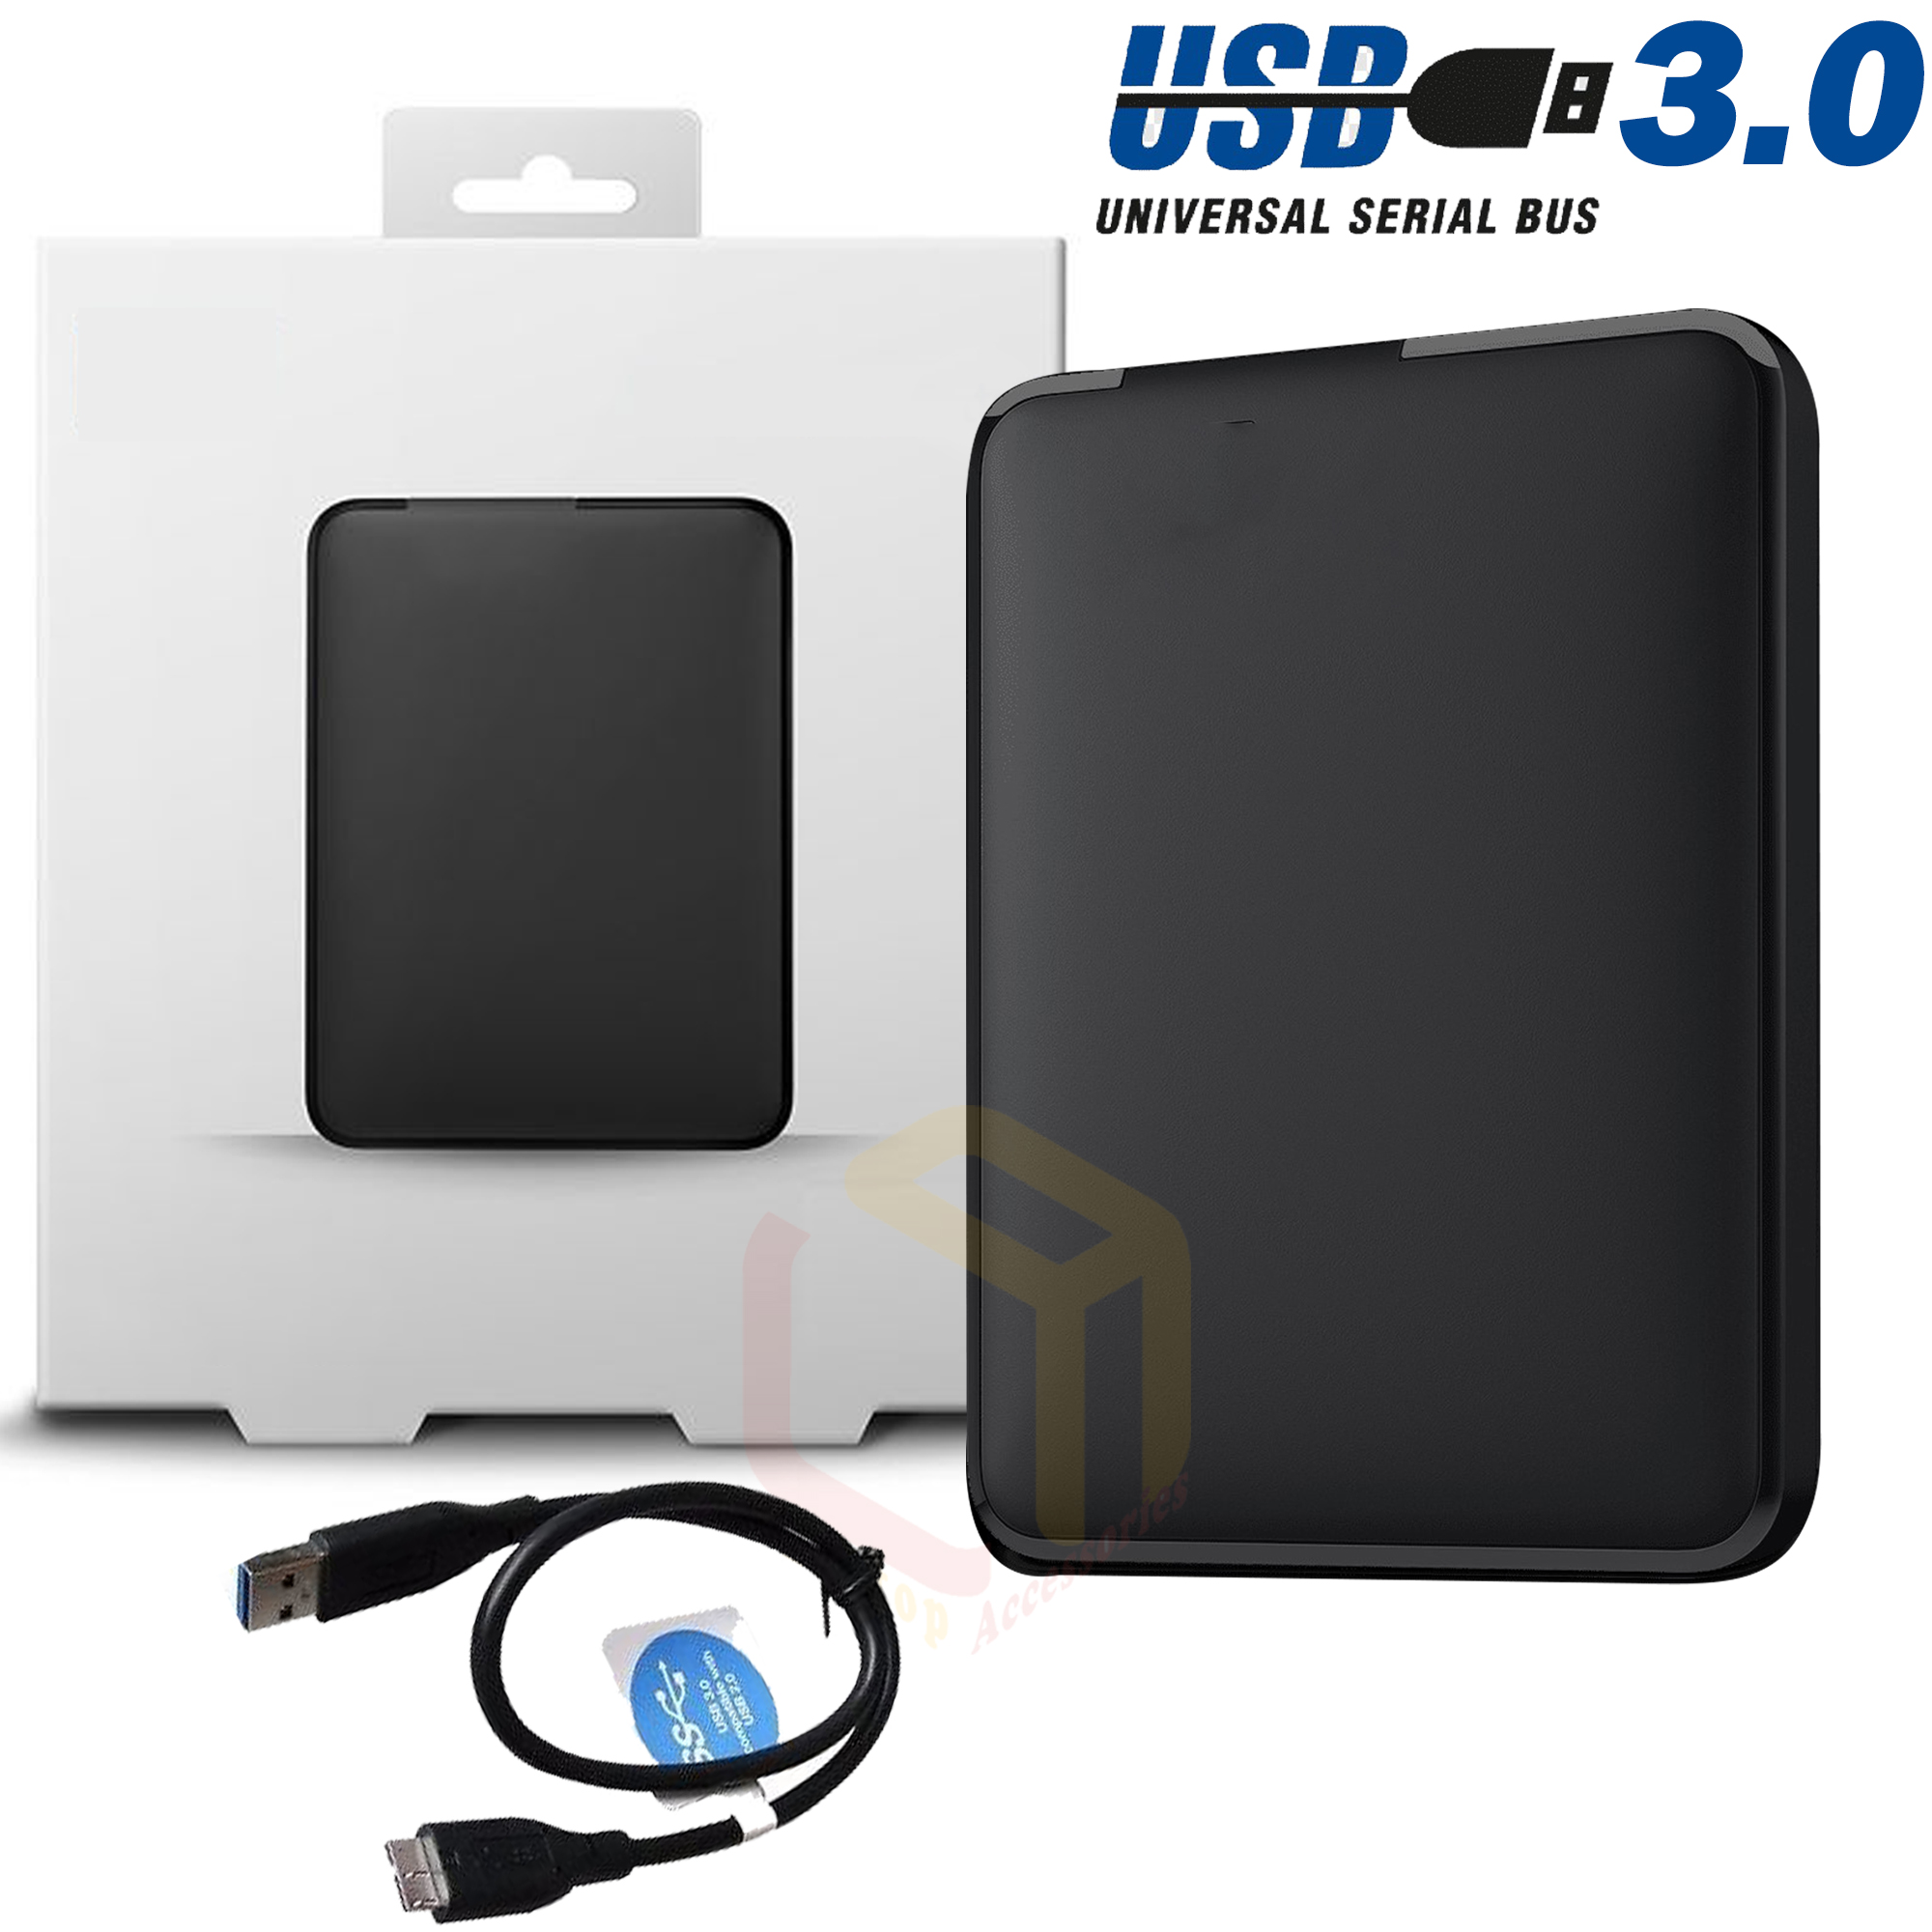 Usb 3.0 Sata External 2.5 Inch Hdd Hard Drive Enclosure Hdd Case Ssd Case For Pc Laptop